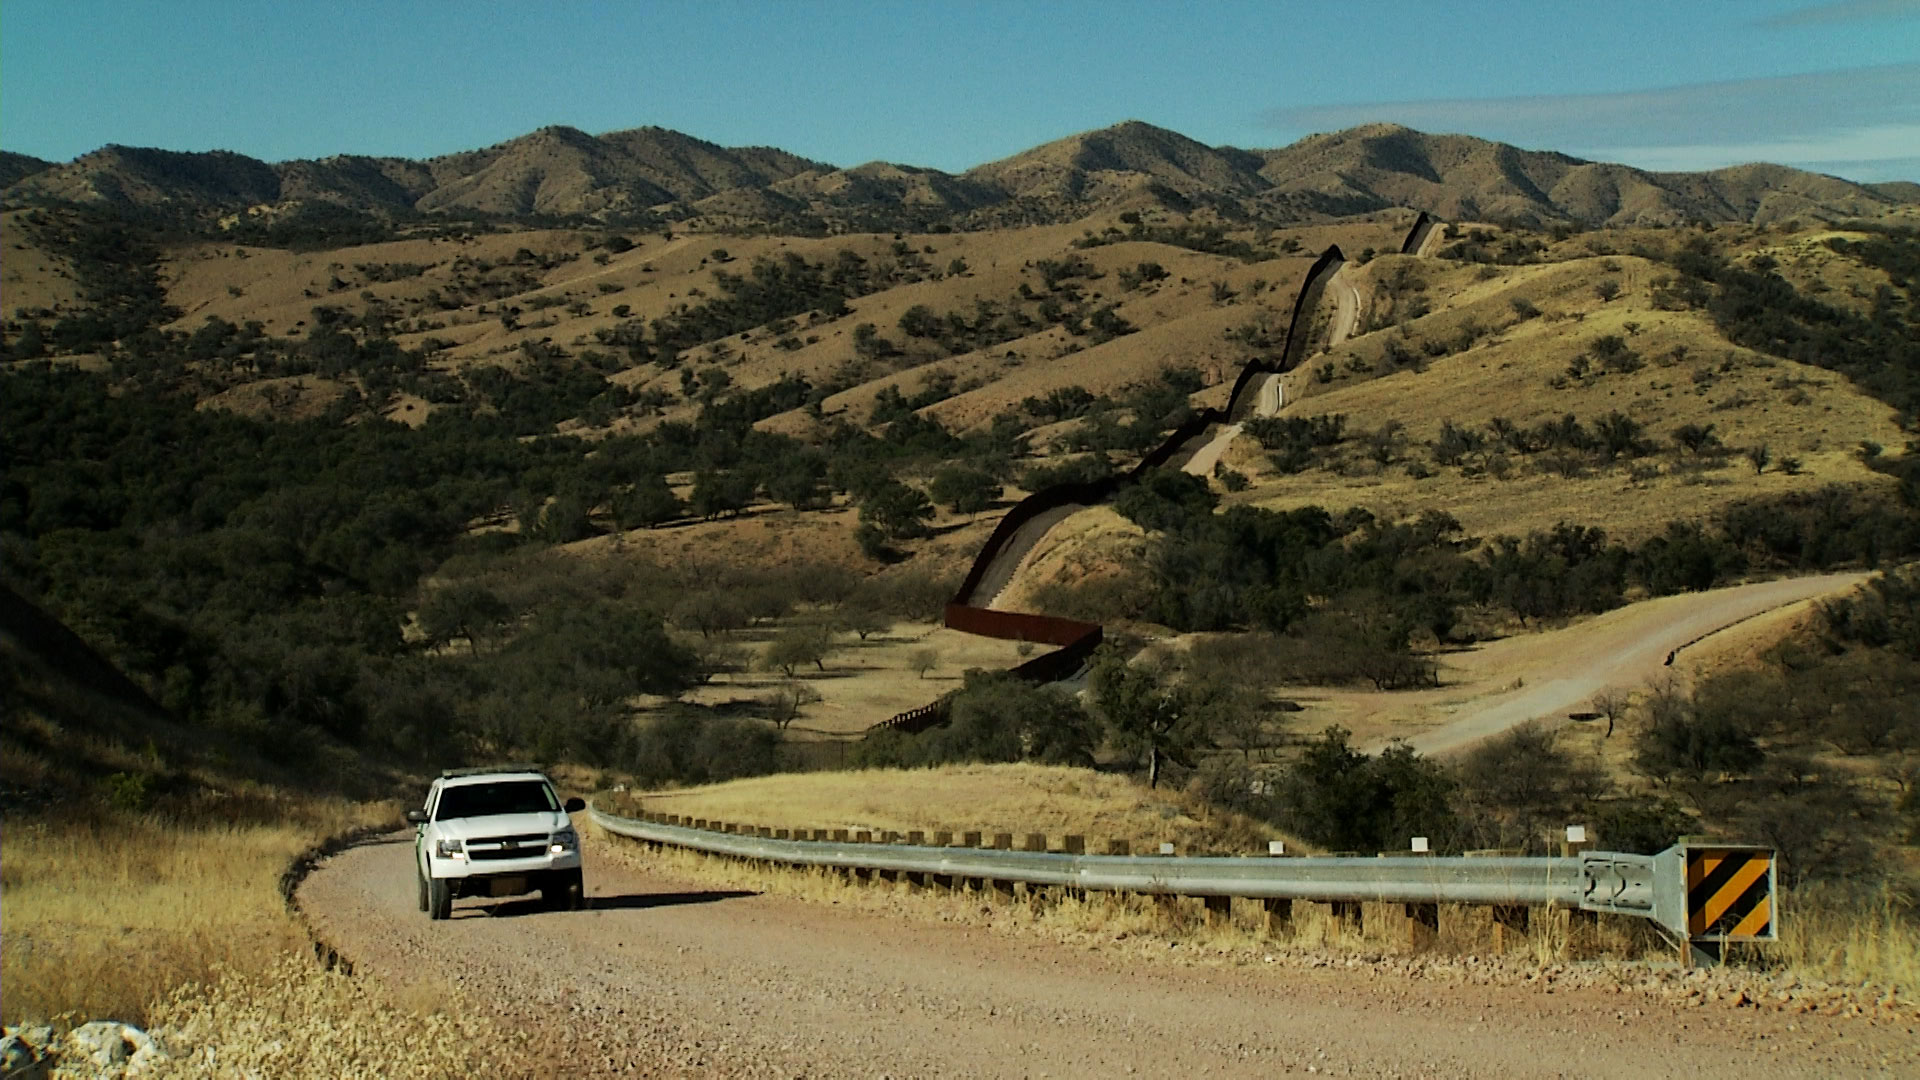 A Border Patrol vehicle drives along a dirt road parallel to the Arizona/Mexico border.